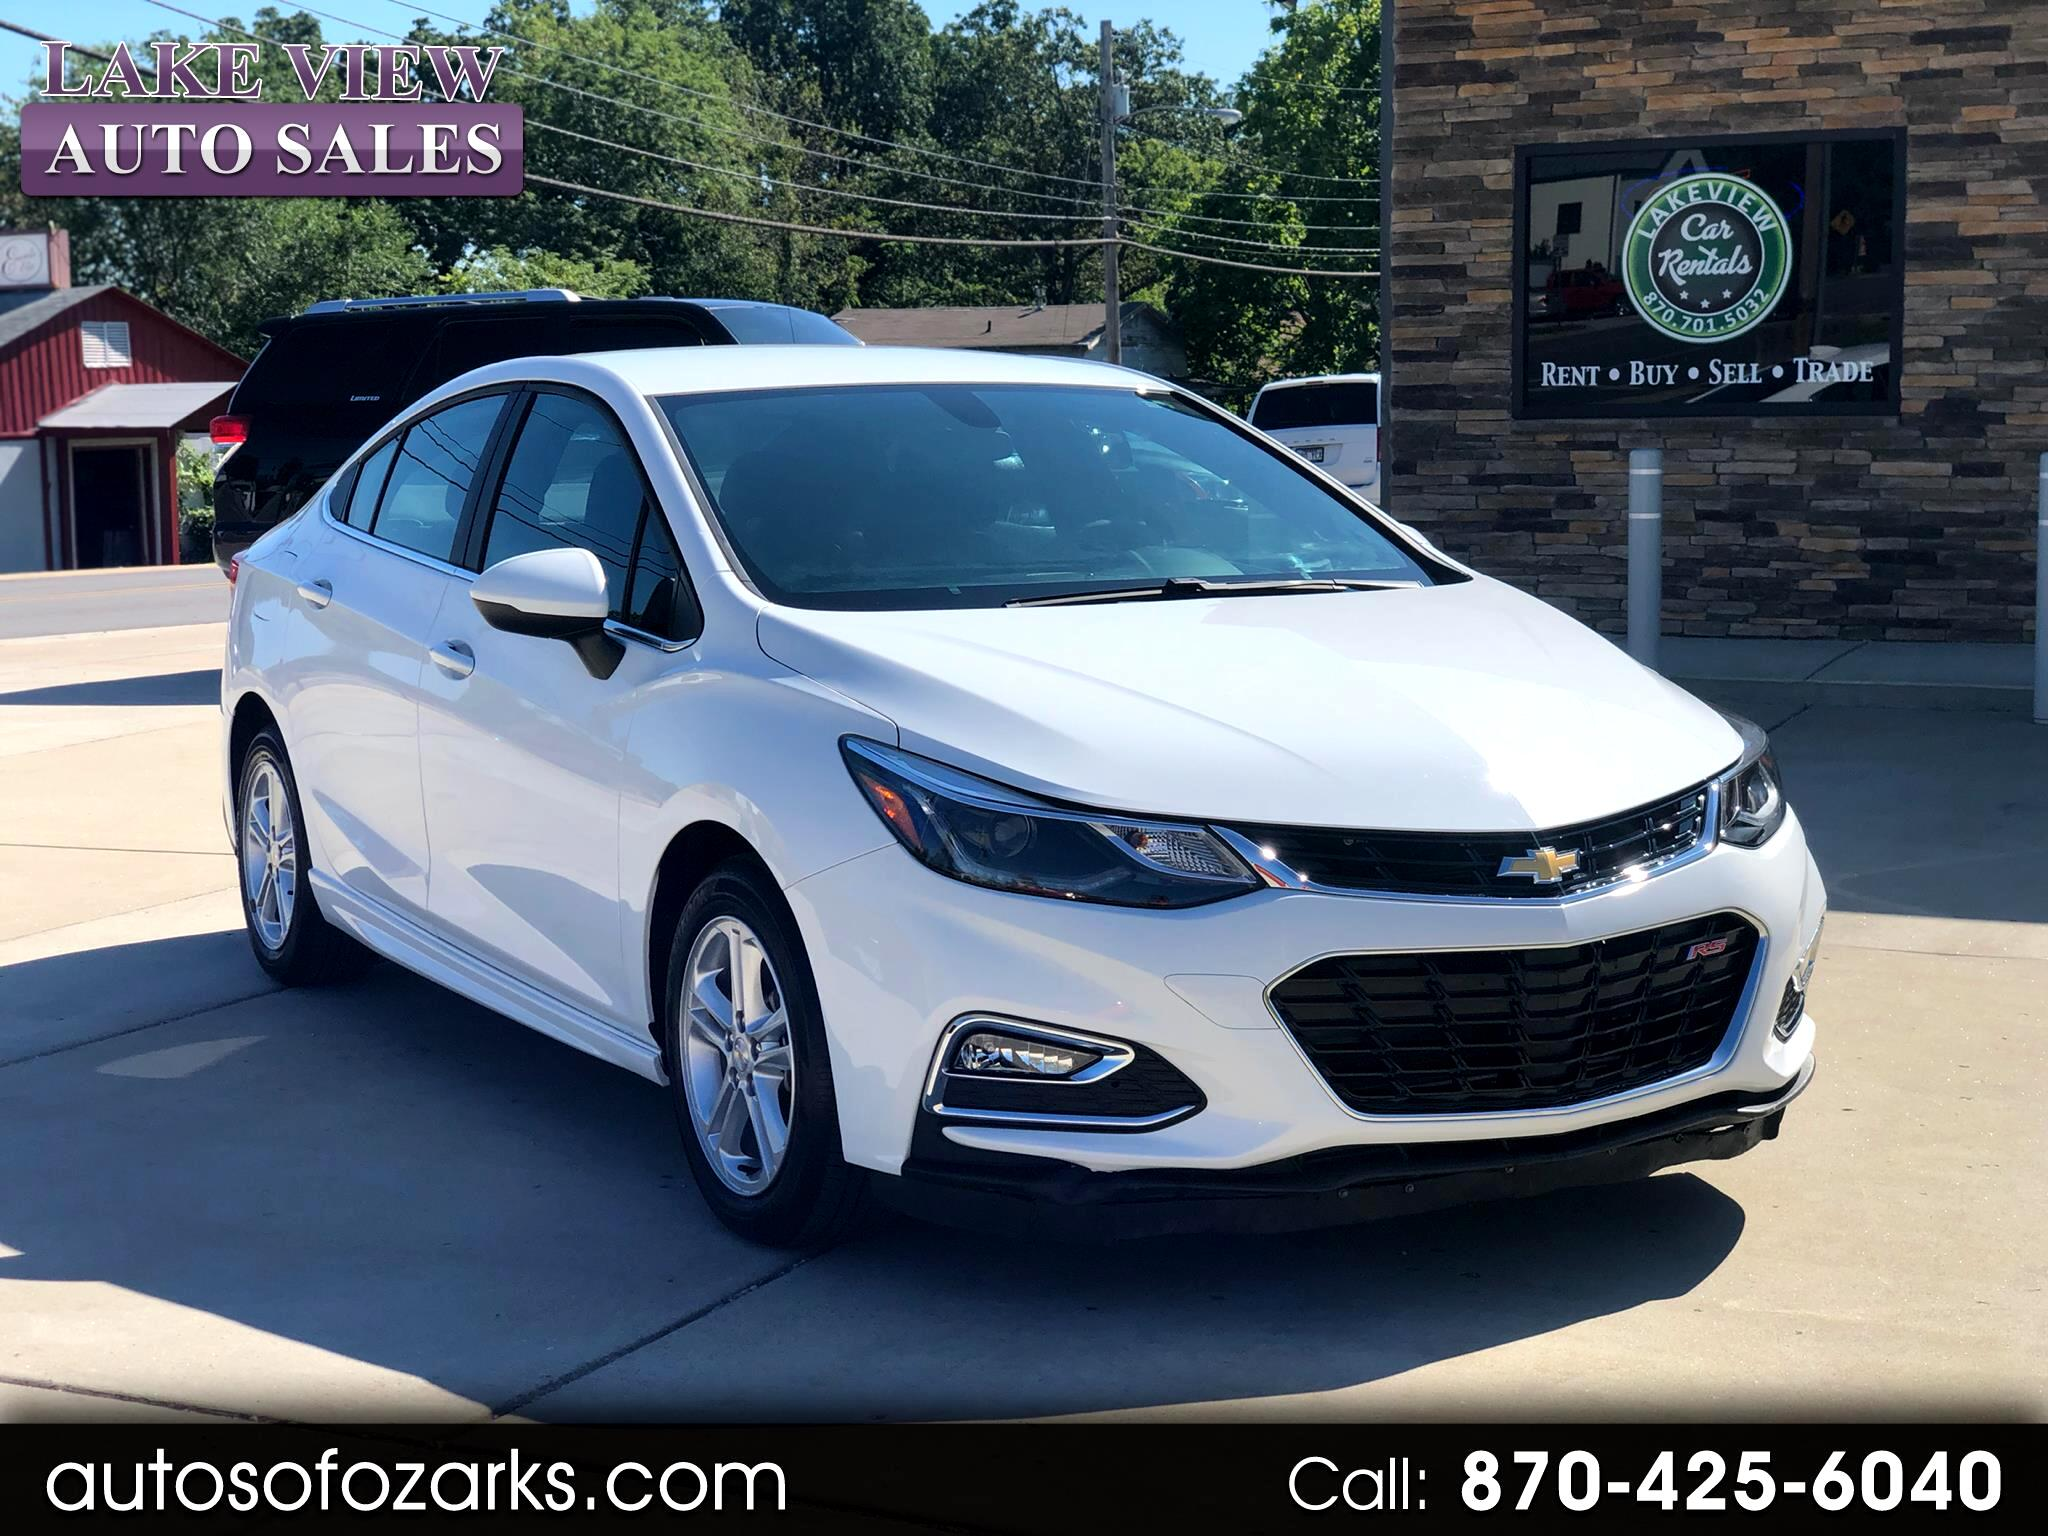 Lakeview Auto Sales >> Used Cars For Sale Mountain Home Ar 72653 Lakeview Auto Sales